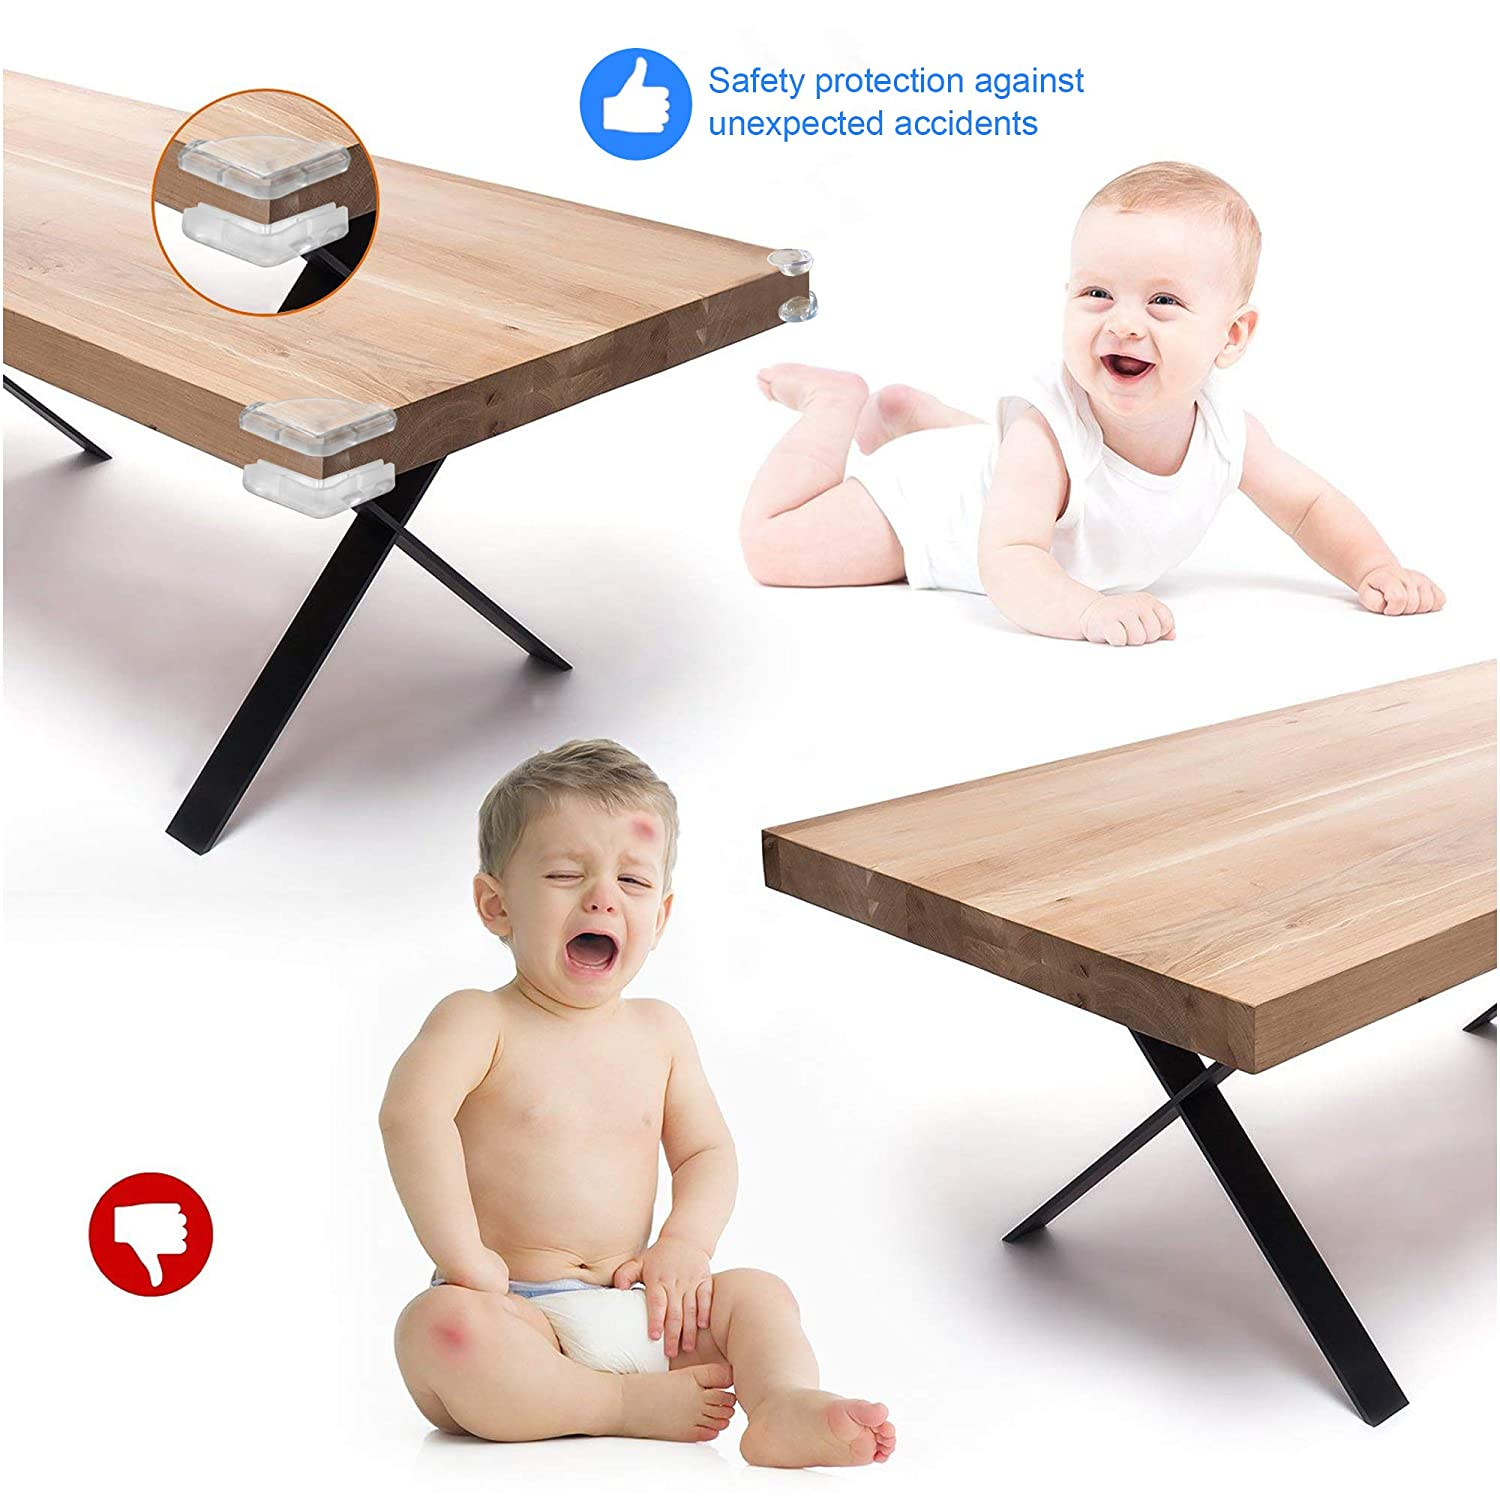 Skeeper Safety Corner Guards 20pcs Table Corner Protector for Child and Baby with 20pcs Strong Adhesive for Backup Use 10 Round+10 Right Angle